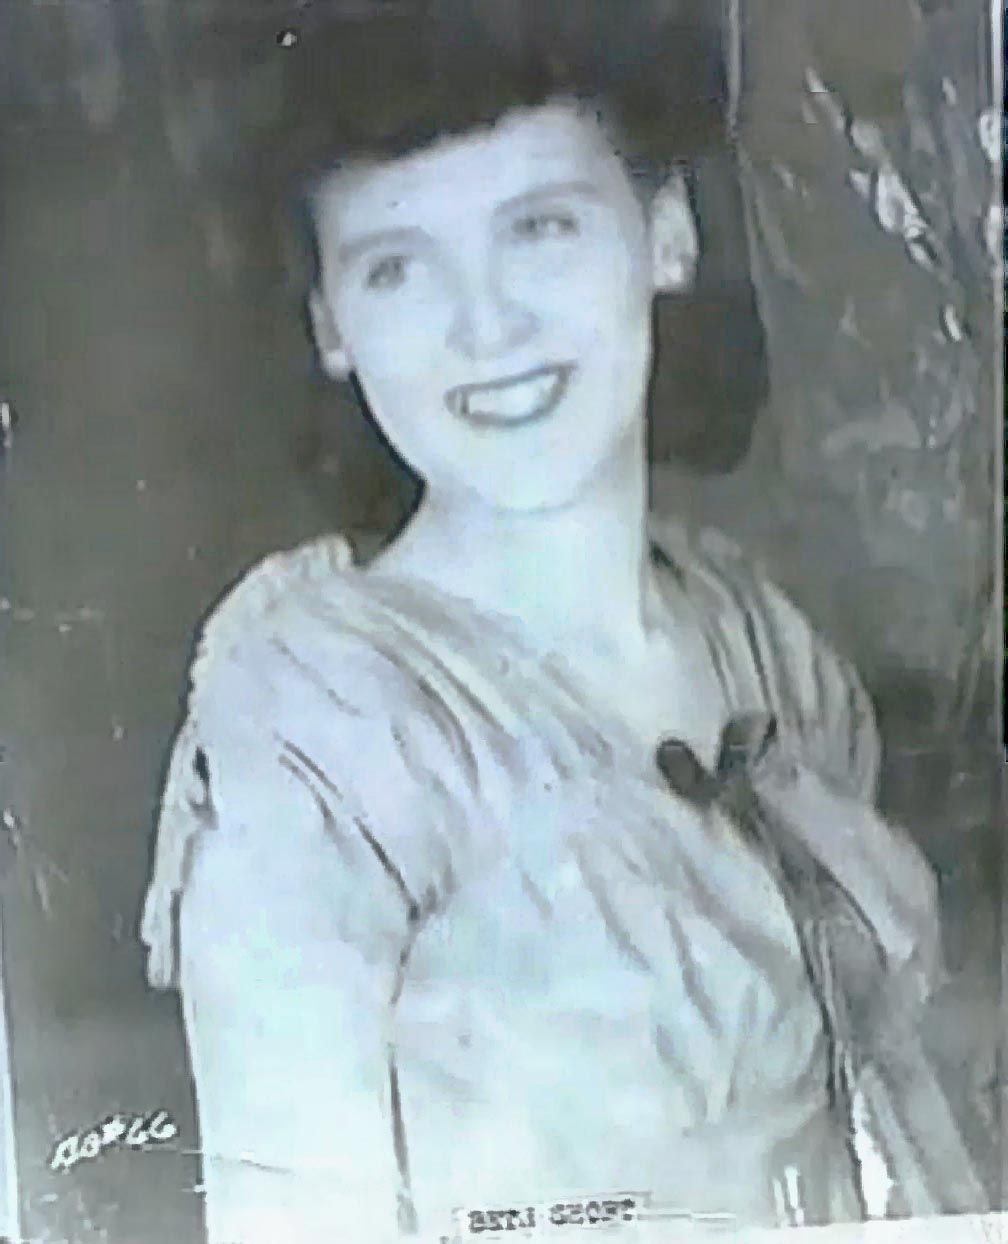 Tim Short Hazard >> Elizabeth Short (aka The Black Dahlia) - age unknown, but she looks similar in age to the 16 ...